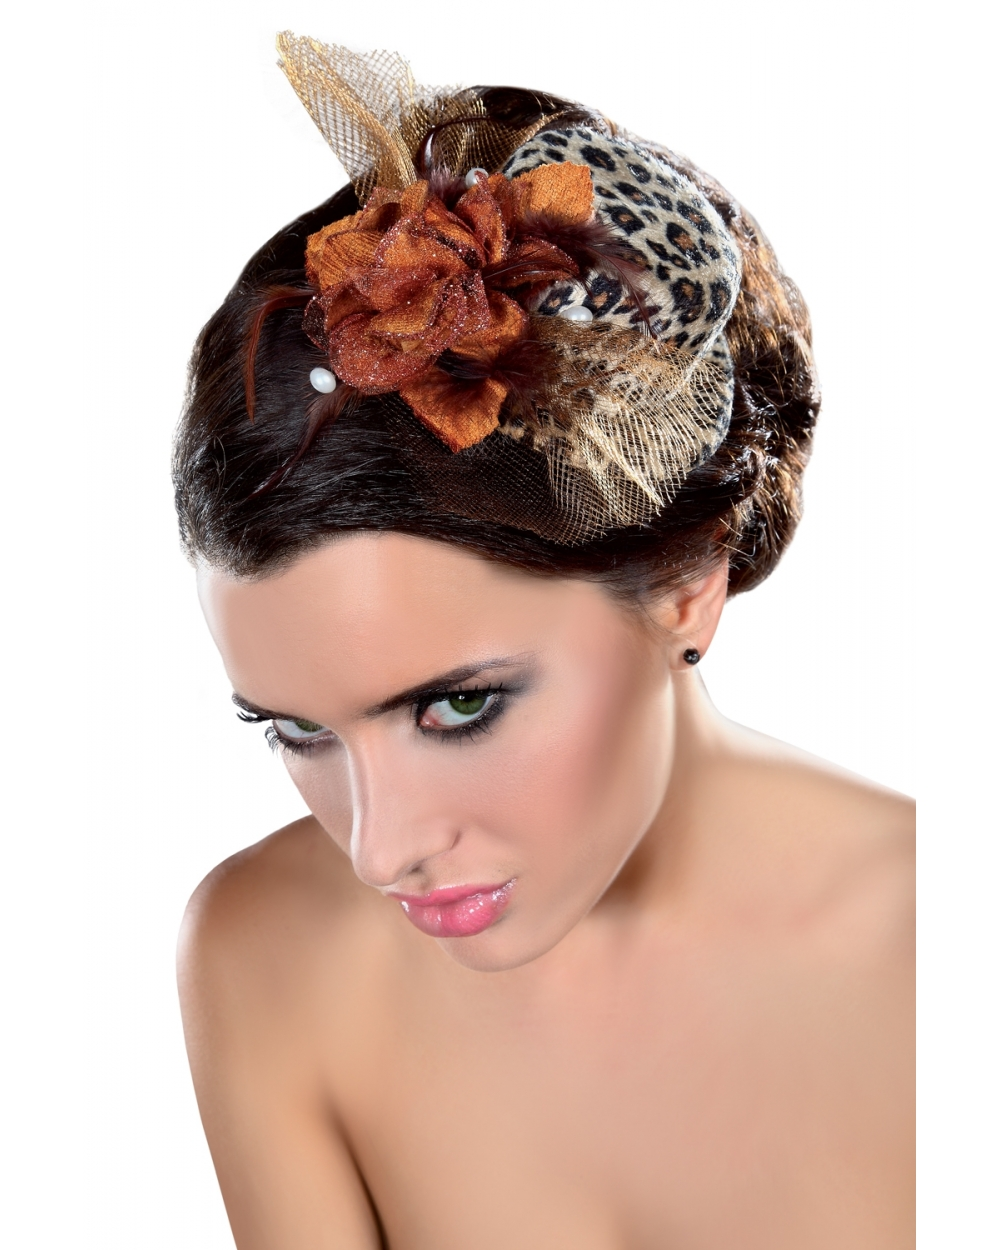 Fascinator Mini Top Hat LC12030 Model 25 LivCo Corsetti